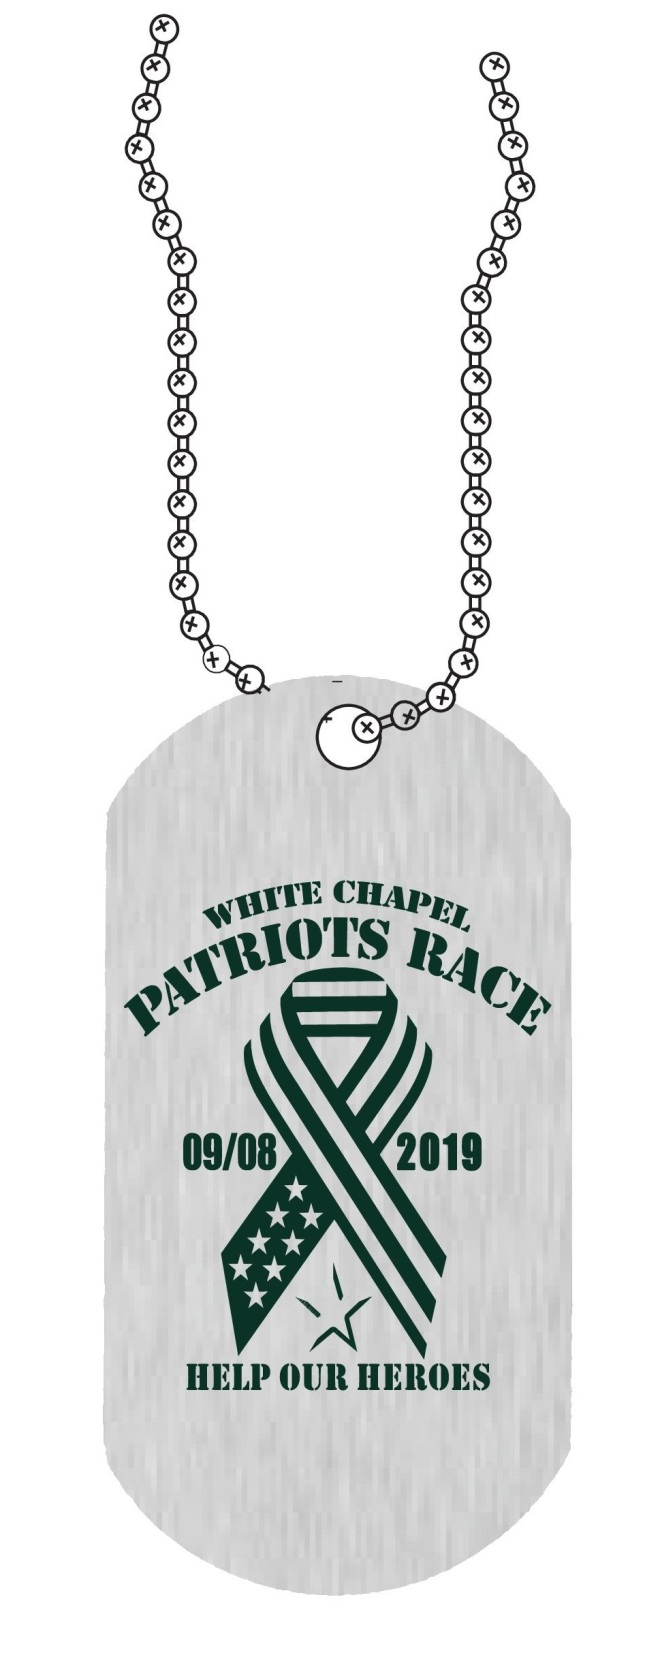 2019 Patriots Race_Finisher Medal